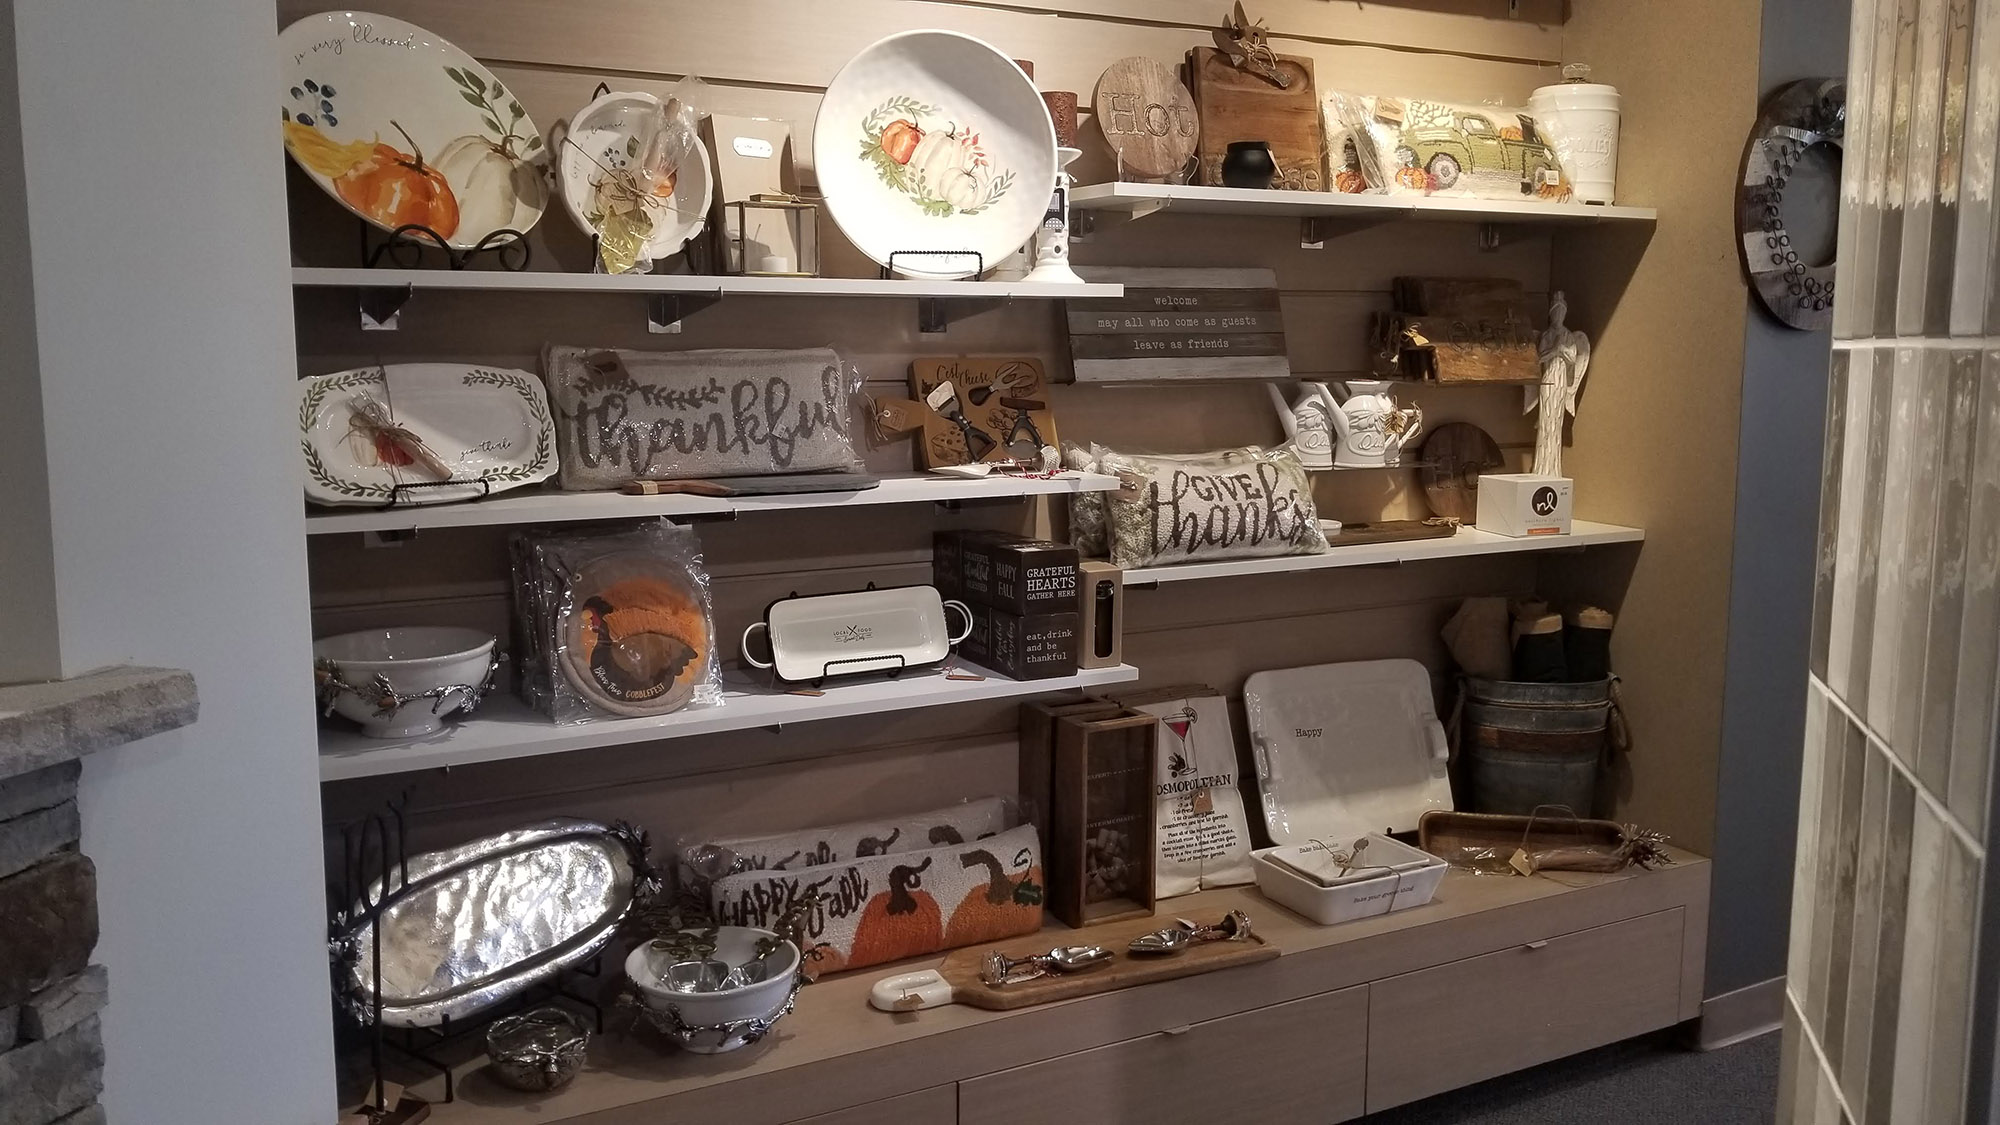 showroom display of Thanksgiving home furnishings and decor at landscaping supply store